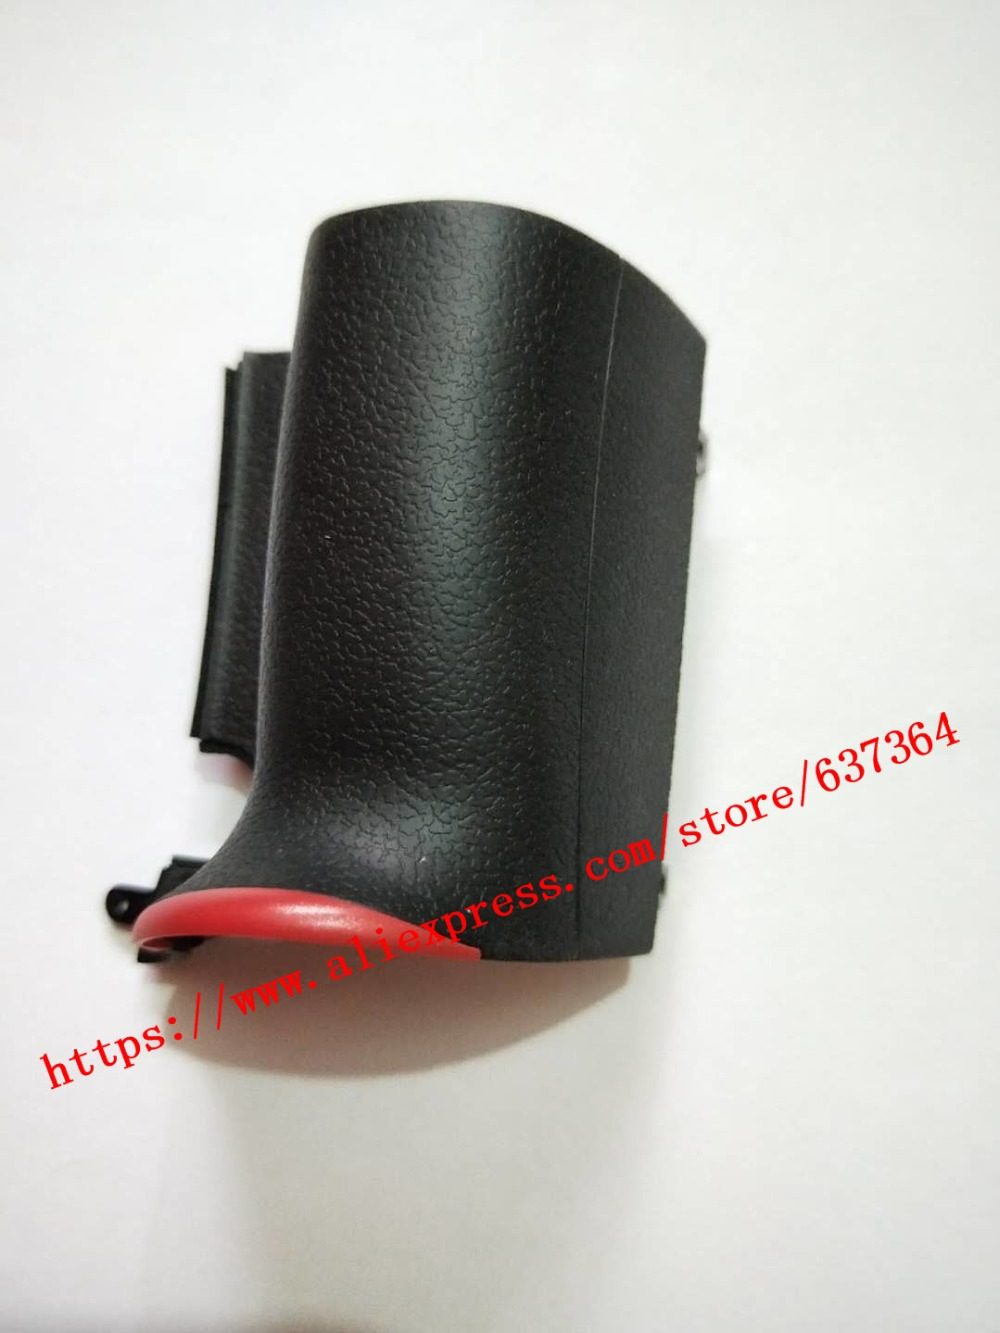 New Front Holding Rubber Main Hand Grip Rubber Unit For Nikon D7100 Camera Replacement Part